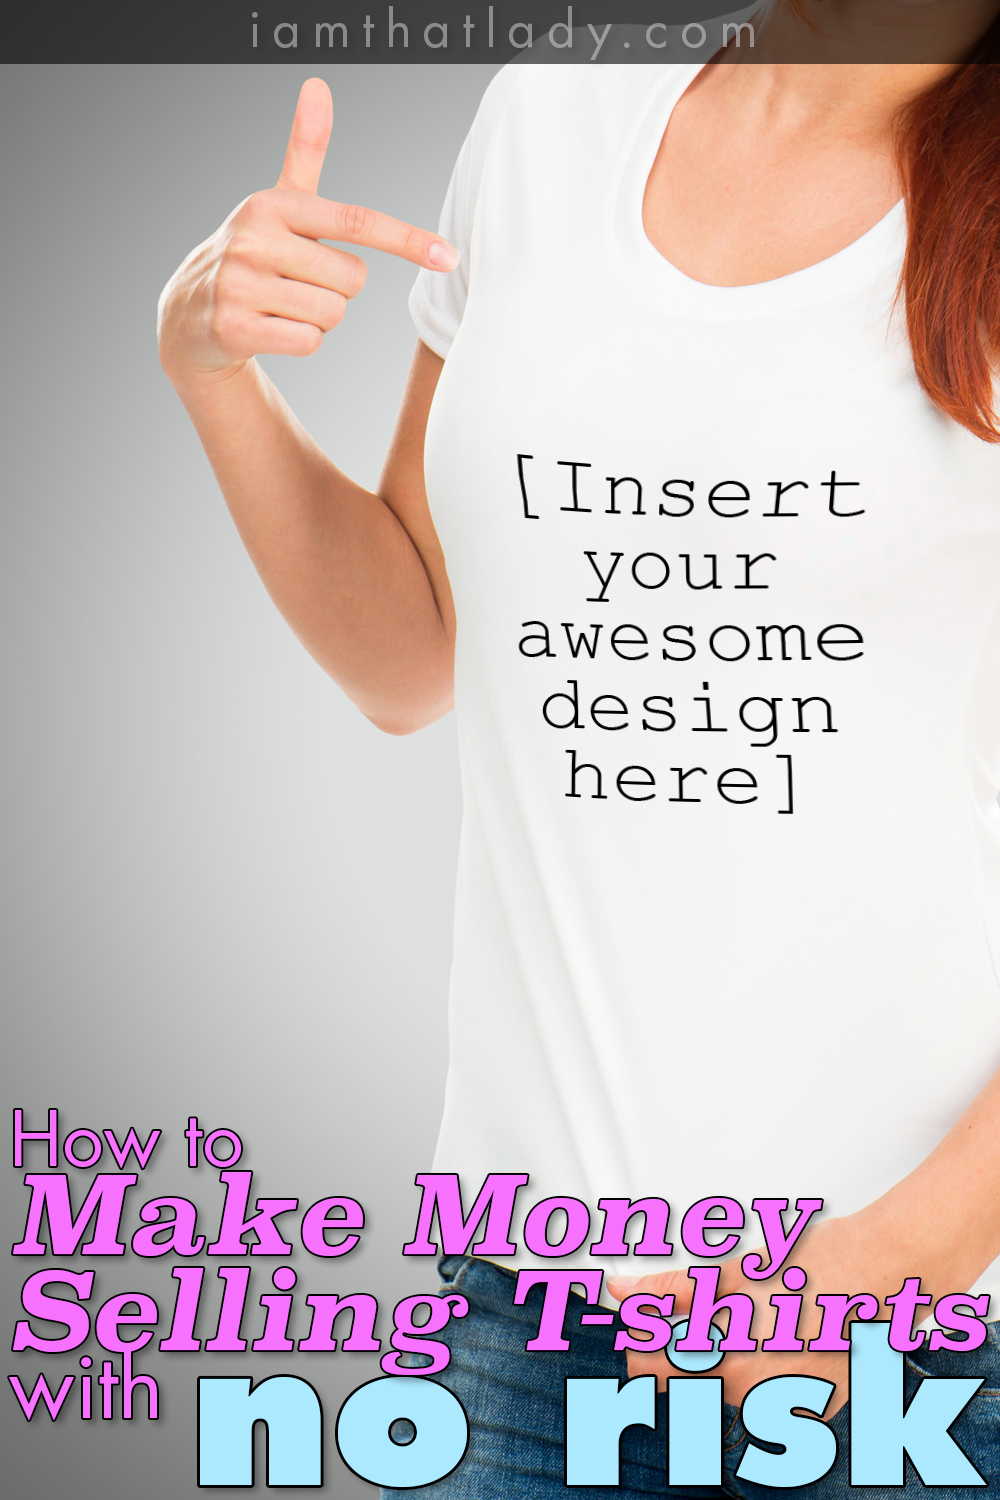 make money selling t-shirts with no risk